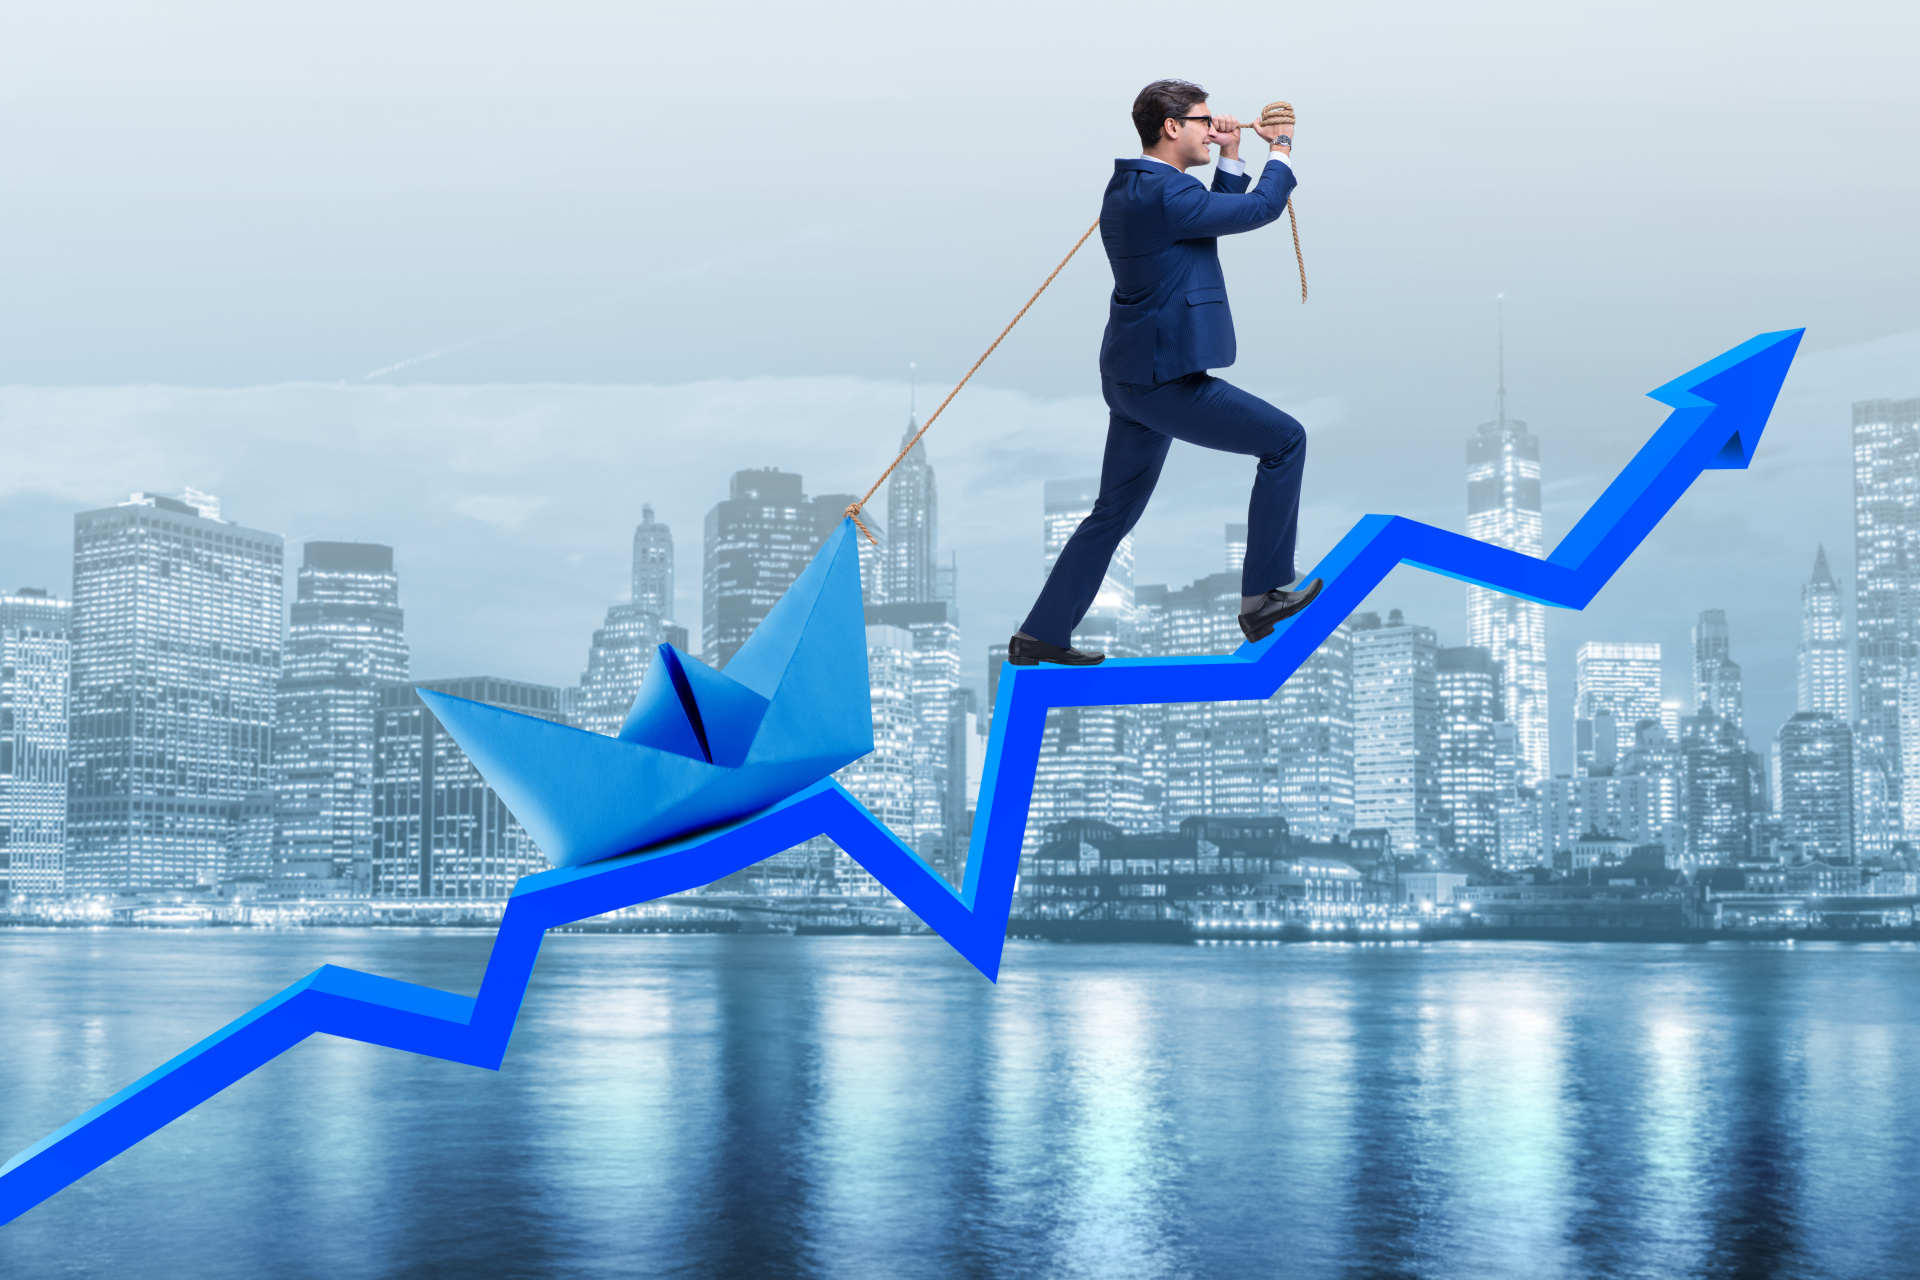 Choosing Investment Opportunities Wisely